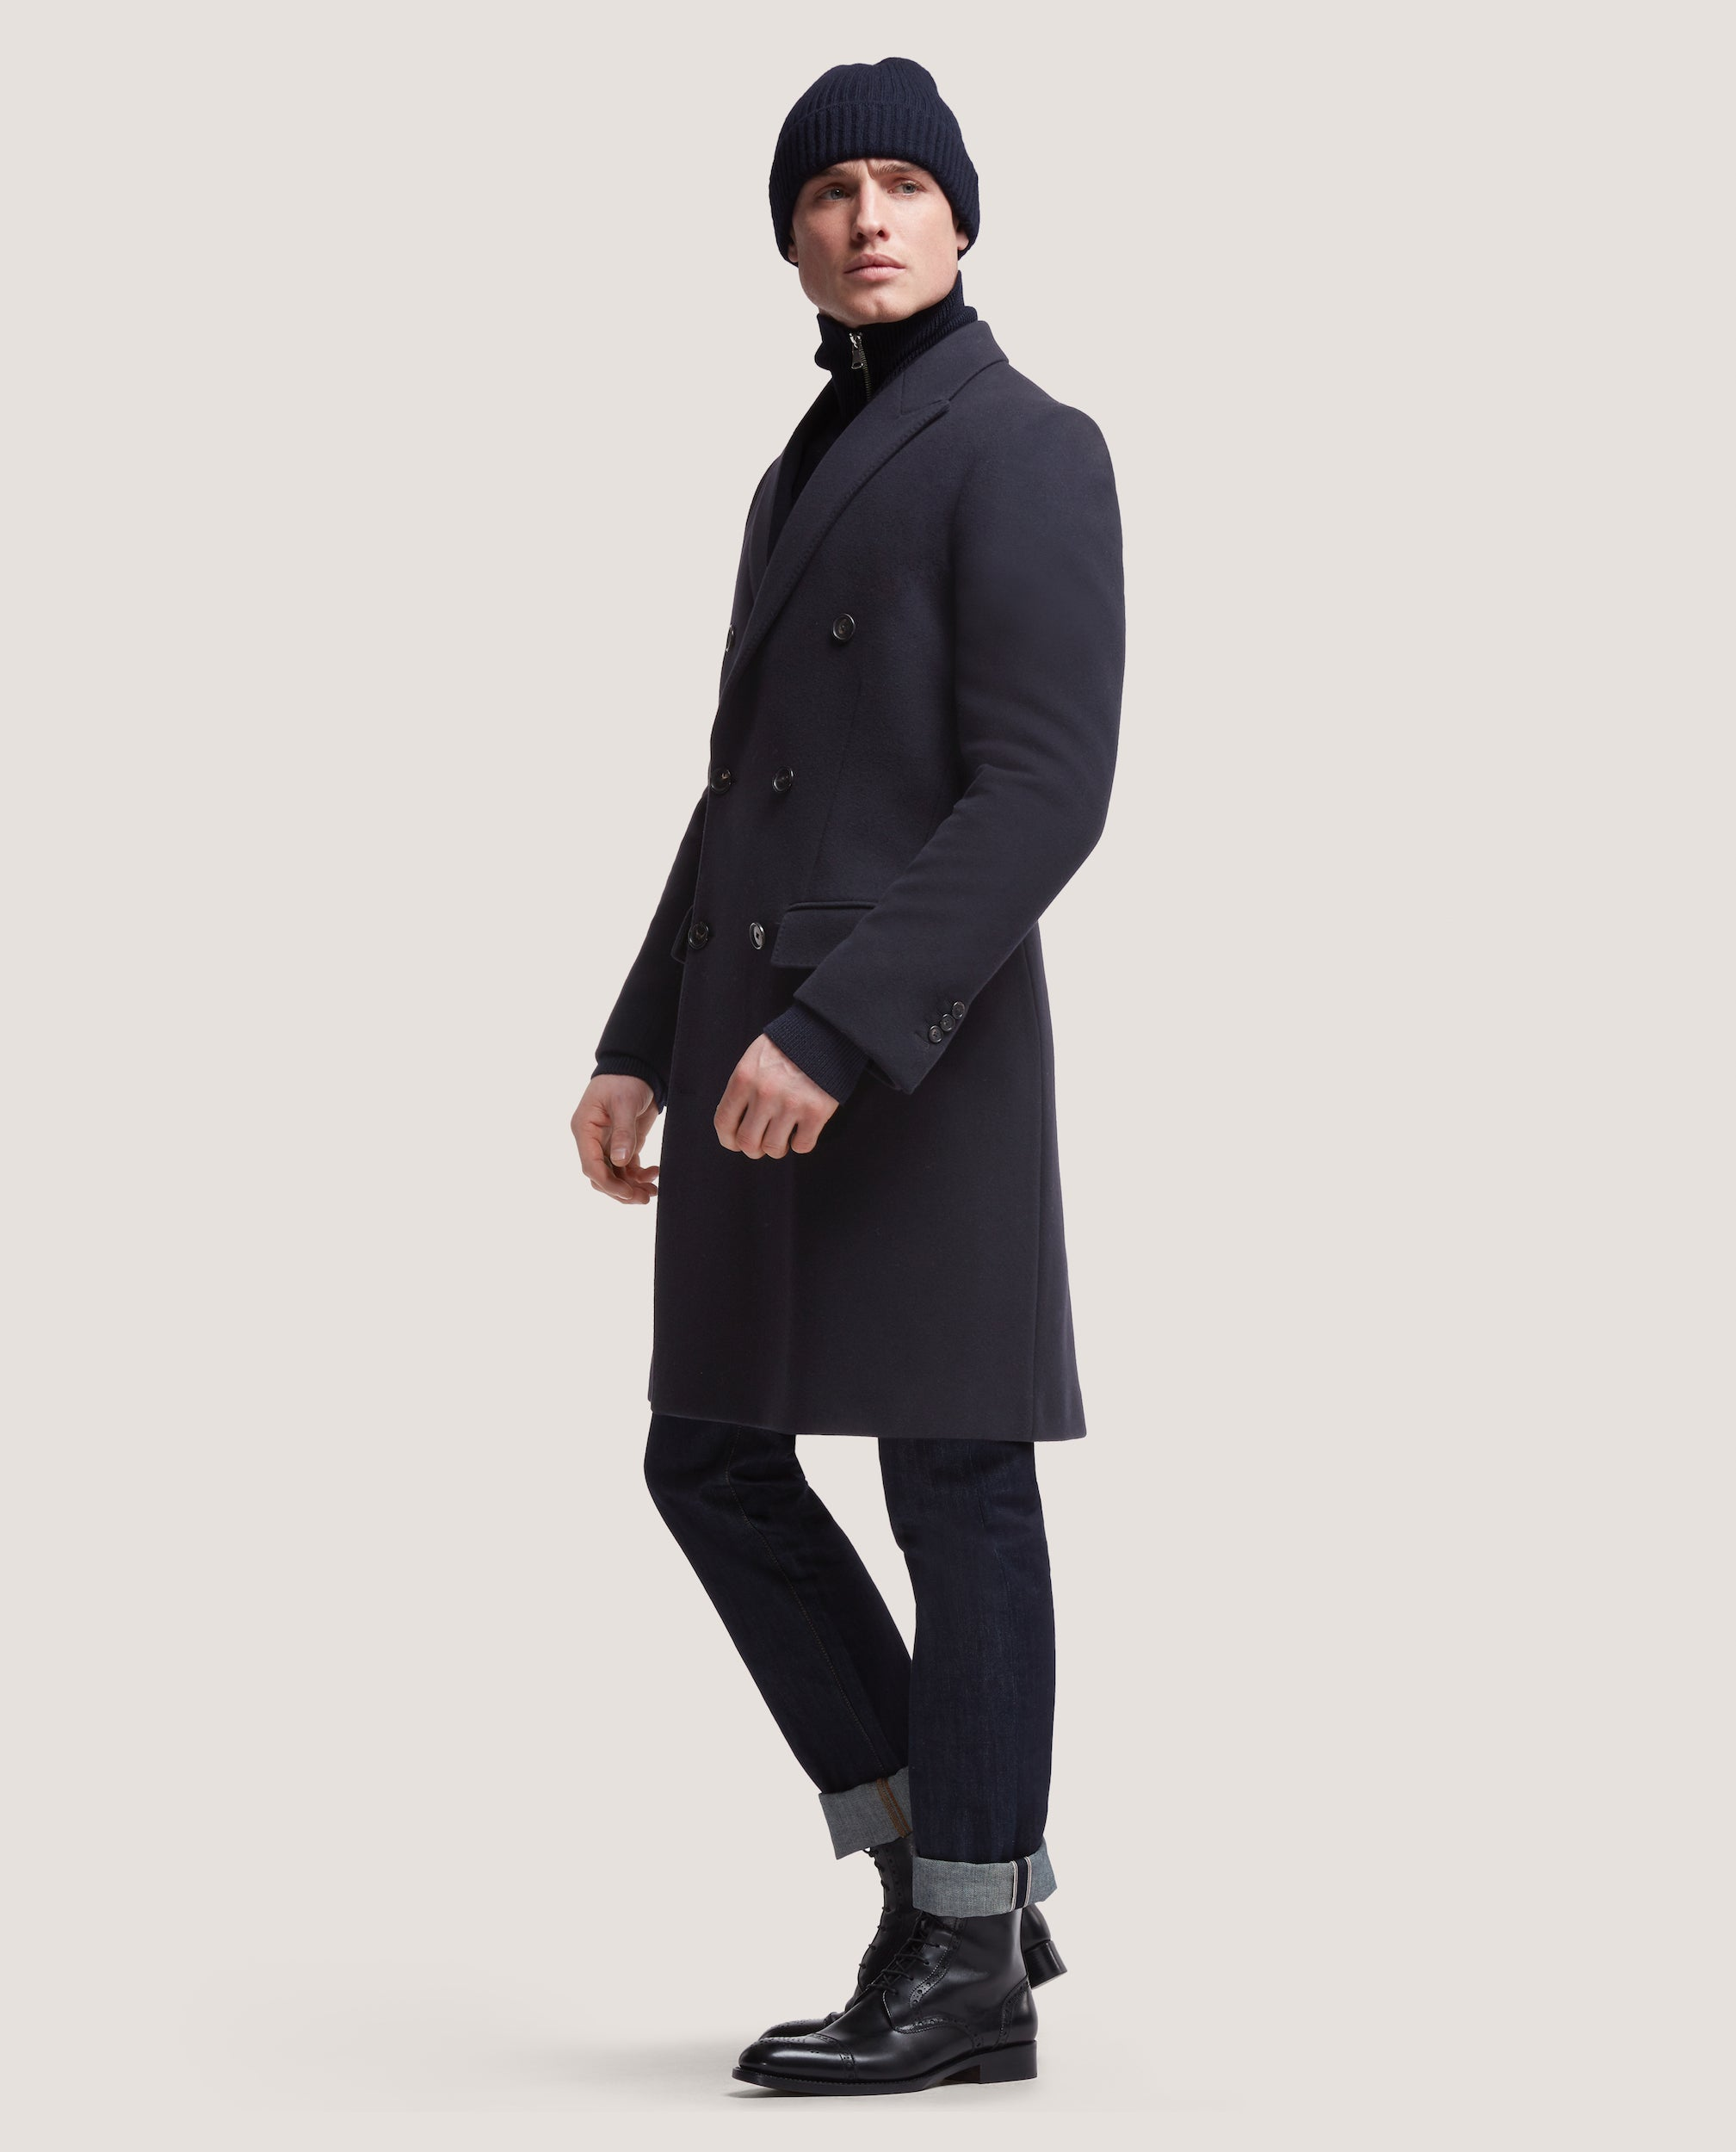 IVES DOUBLE BREASTED WOOL OVERCOAT by Salle Privée